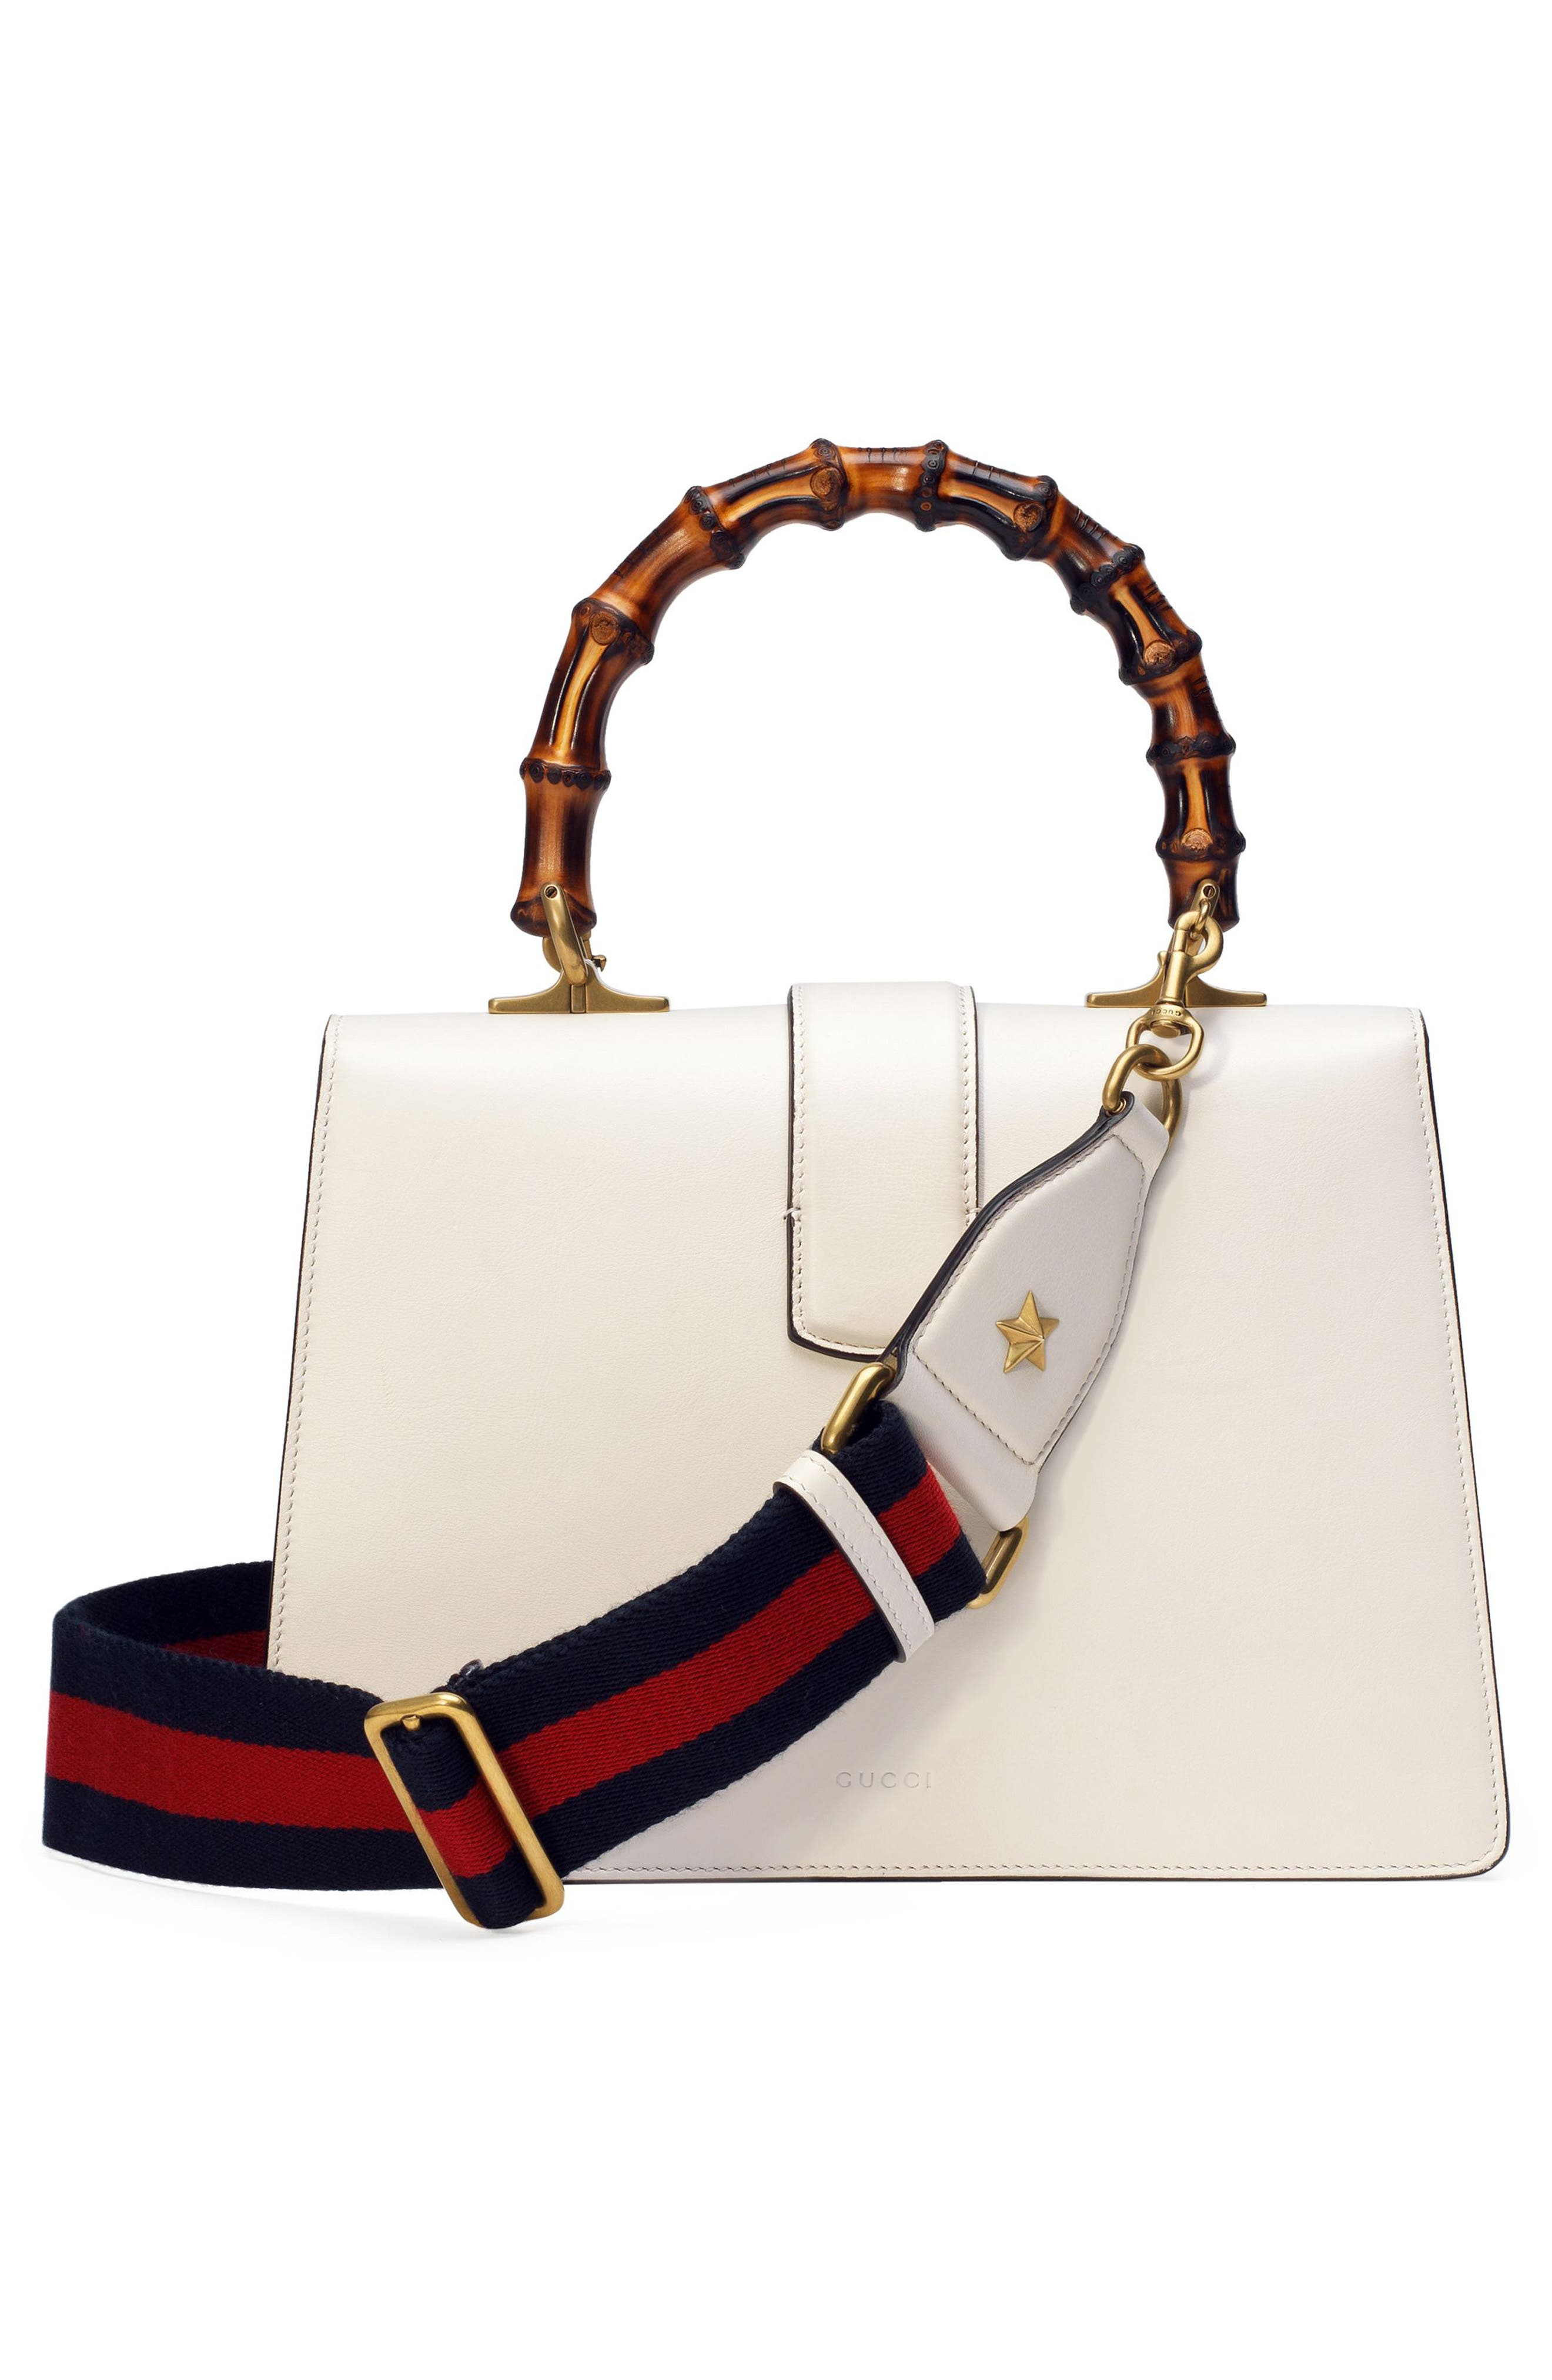 Small Dionysus Top Handle Leather Shoulder Bag,                             Alternate thumbnail 3, color,                             MYSTIC WHITE/ BLUE/ RED